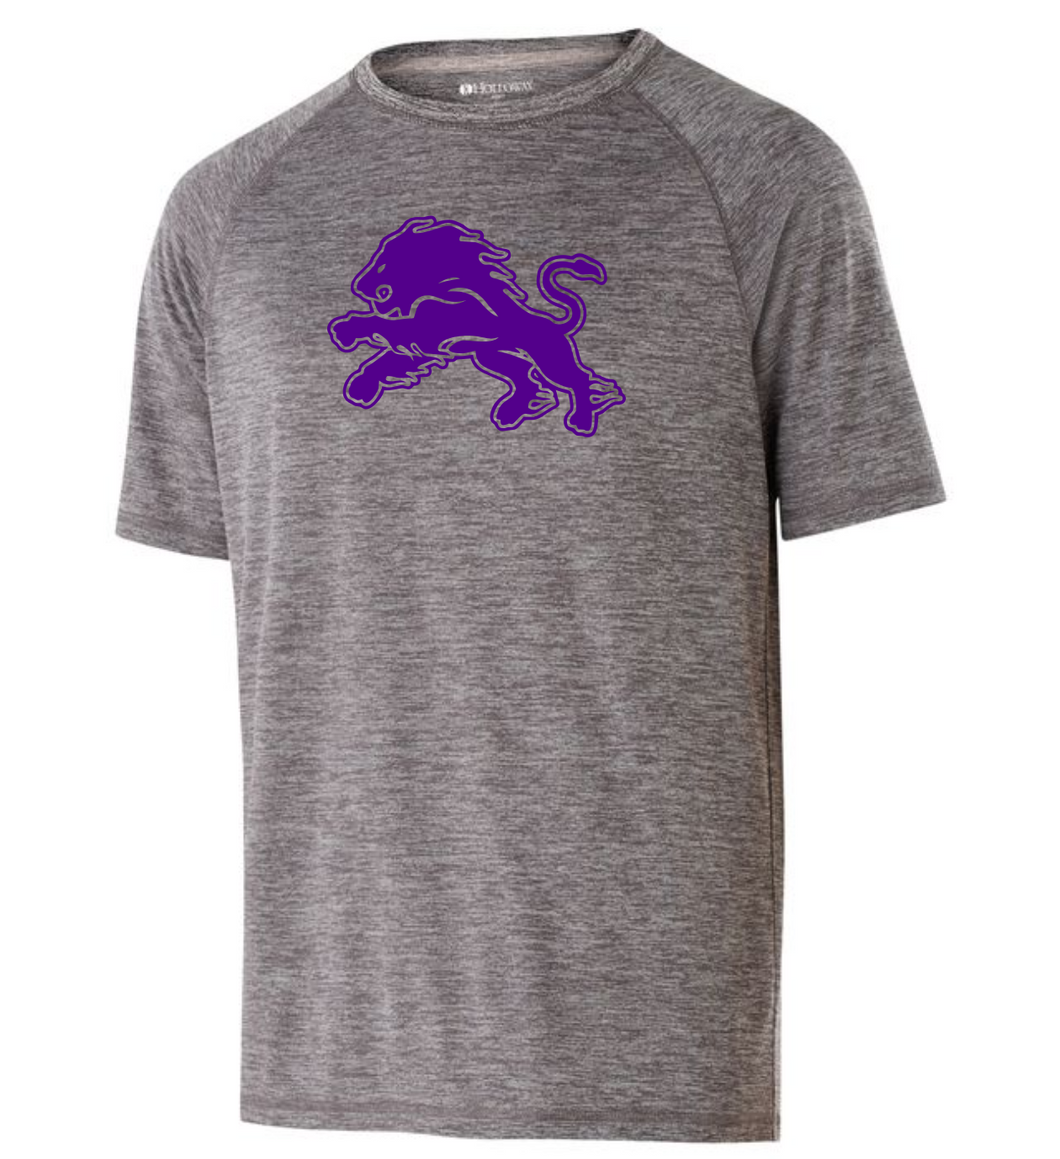 Dryden Football Performance Tee- 1 Color Image